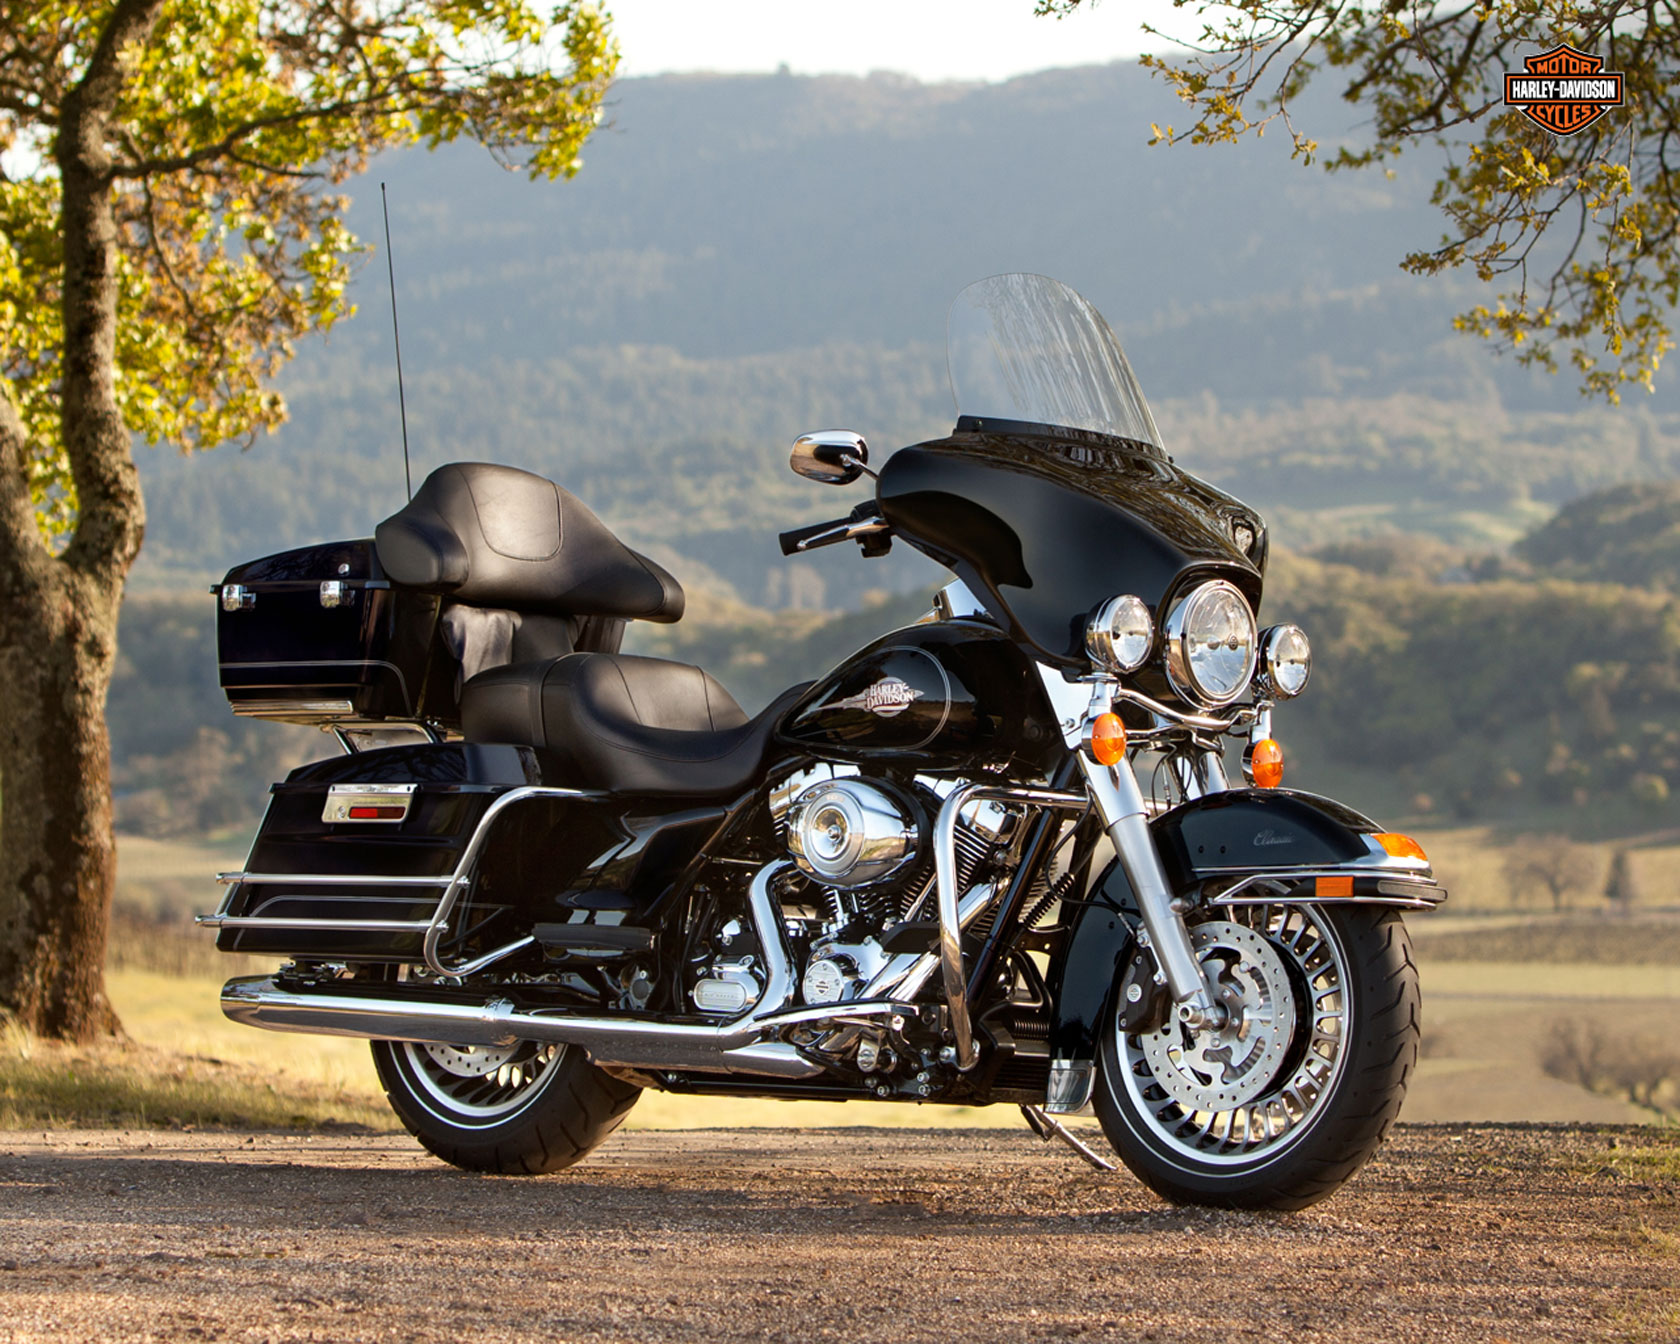 Harley-Davidson FLHTC Electra Glide Classic 2003 pics #18015